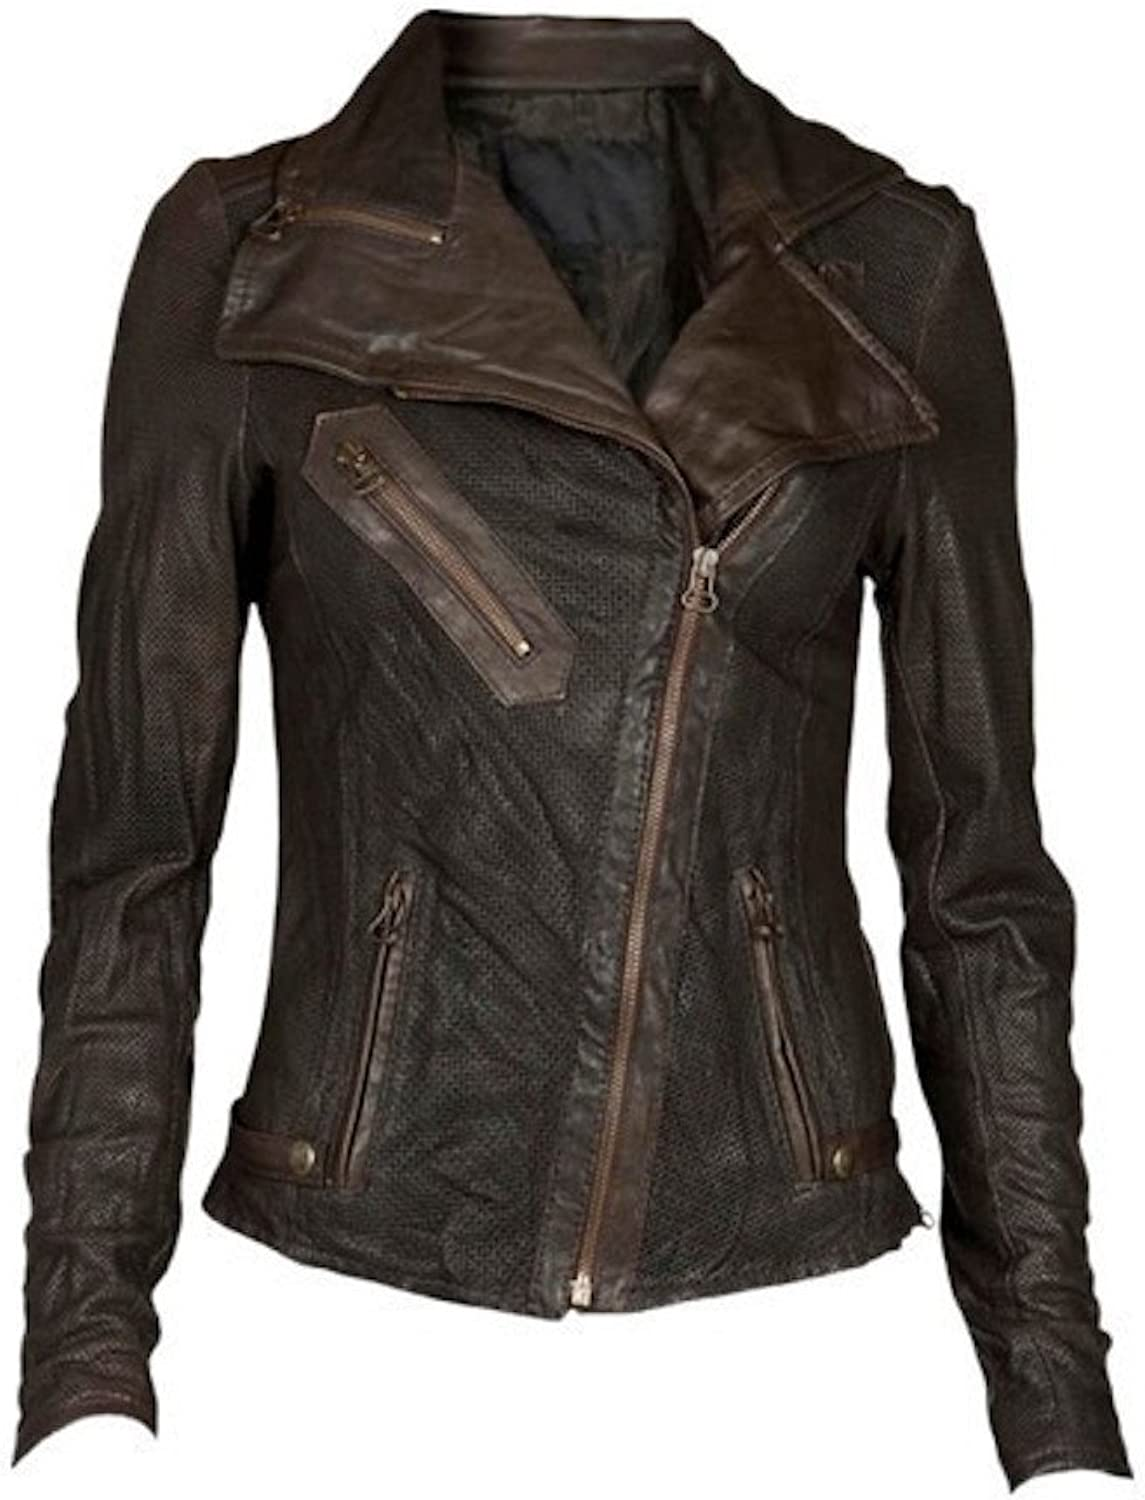 Fadcloset Alayna Womens Leather Jacket